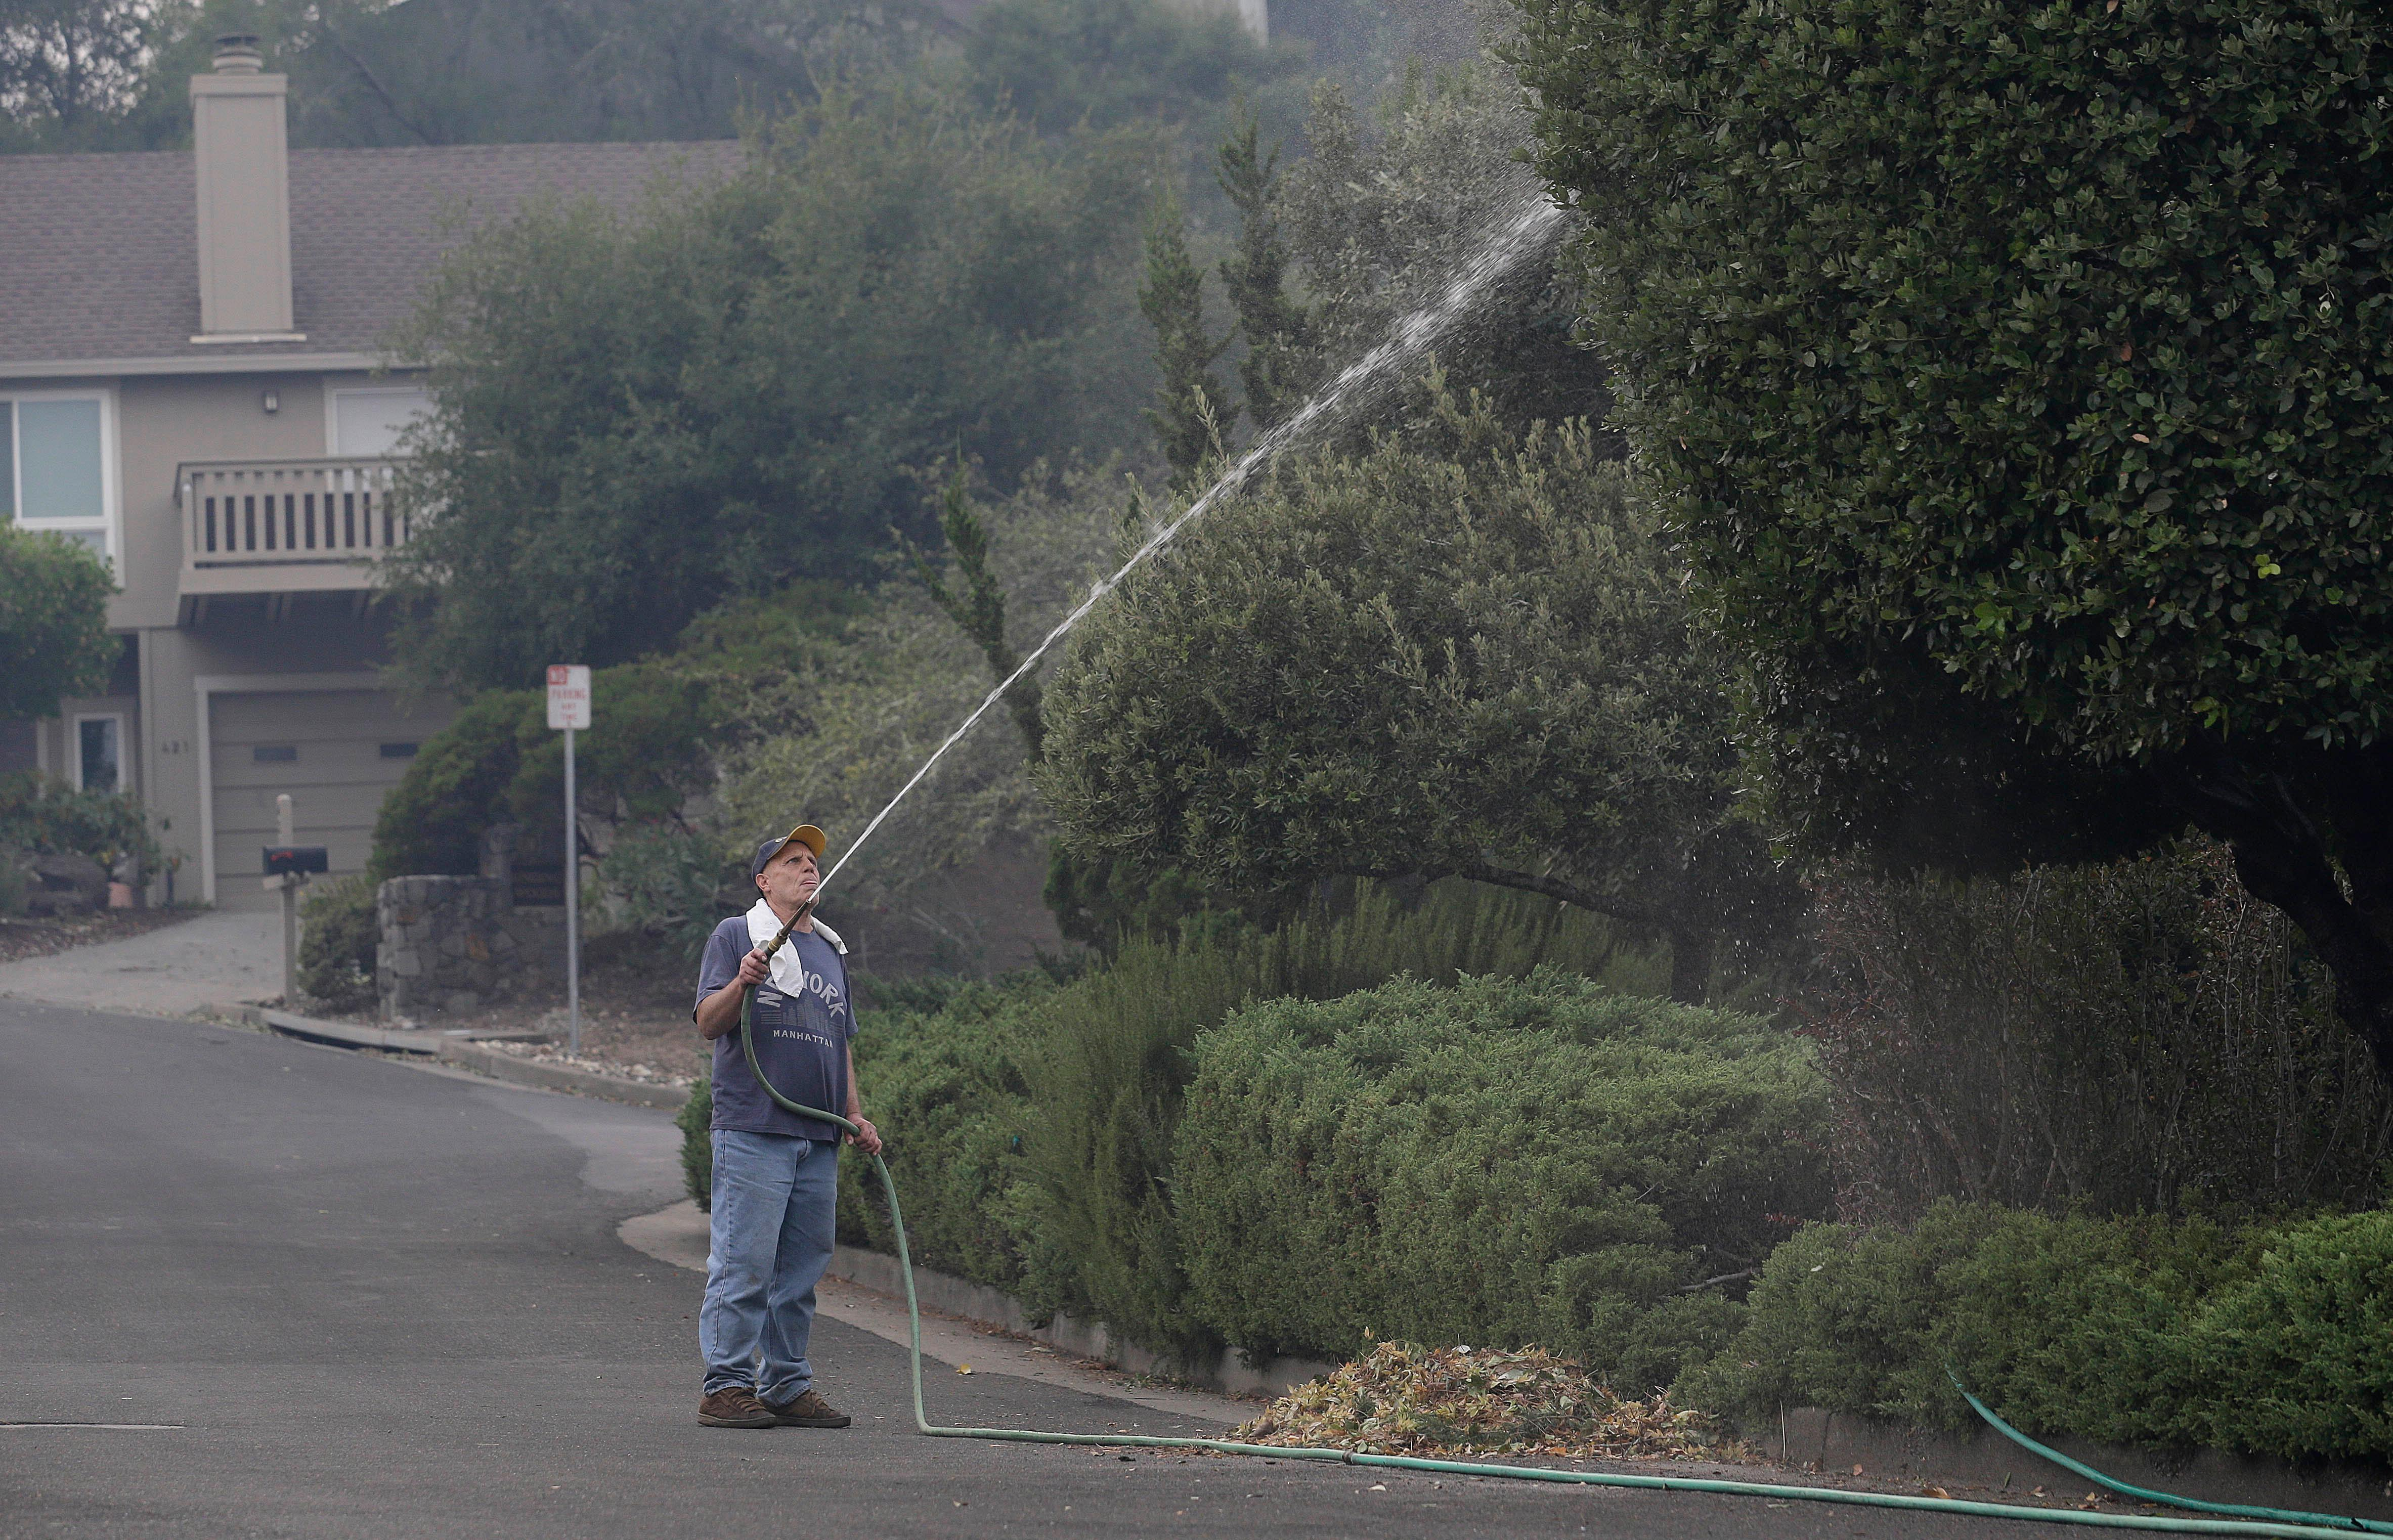 Leonard George sprays down trees in front of his house in the Oakmont area of Santa Rosa, Calif., Tuesday, Oct. 10, 2017. (AP Photo/Jeff Chiu)